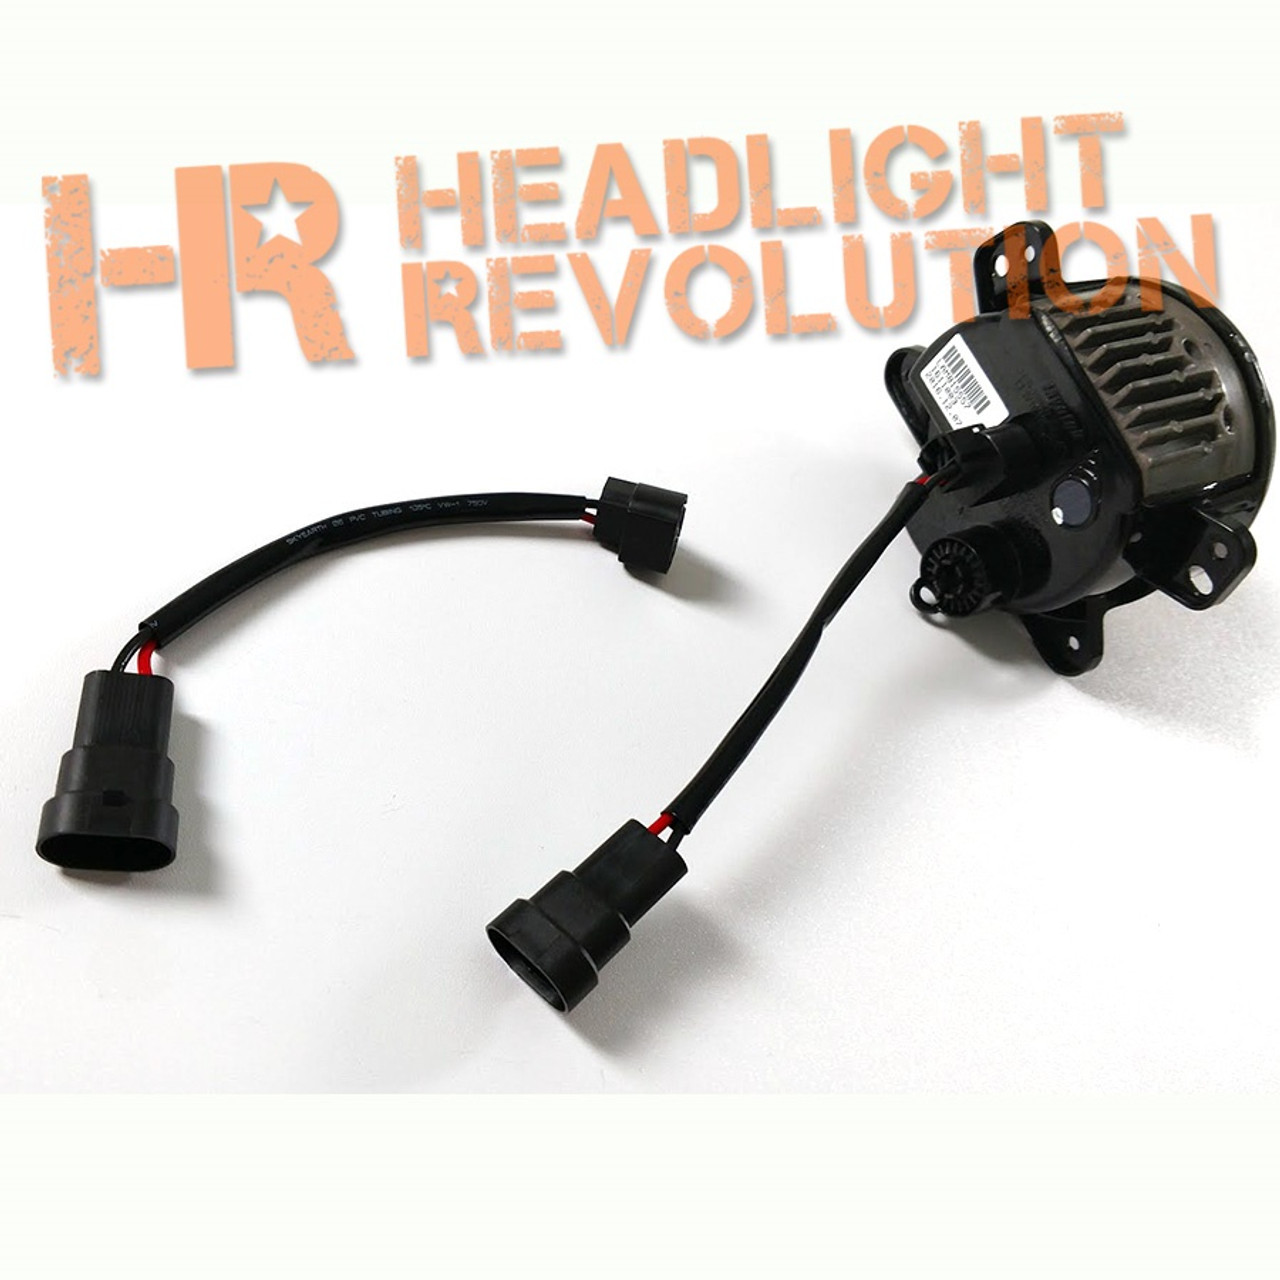 small resolution of  headlight revolution 9005 male to 2504 adapter wire harnesses on vw beetle headlight